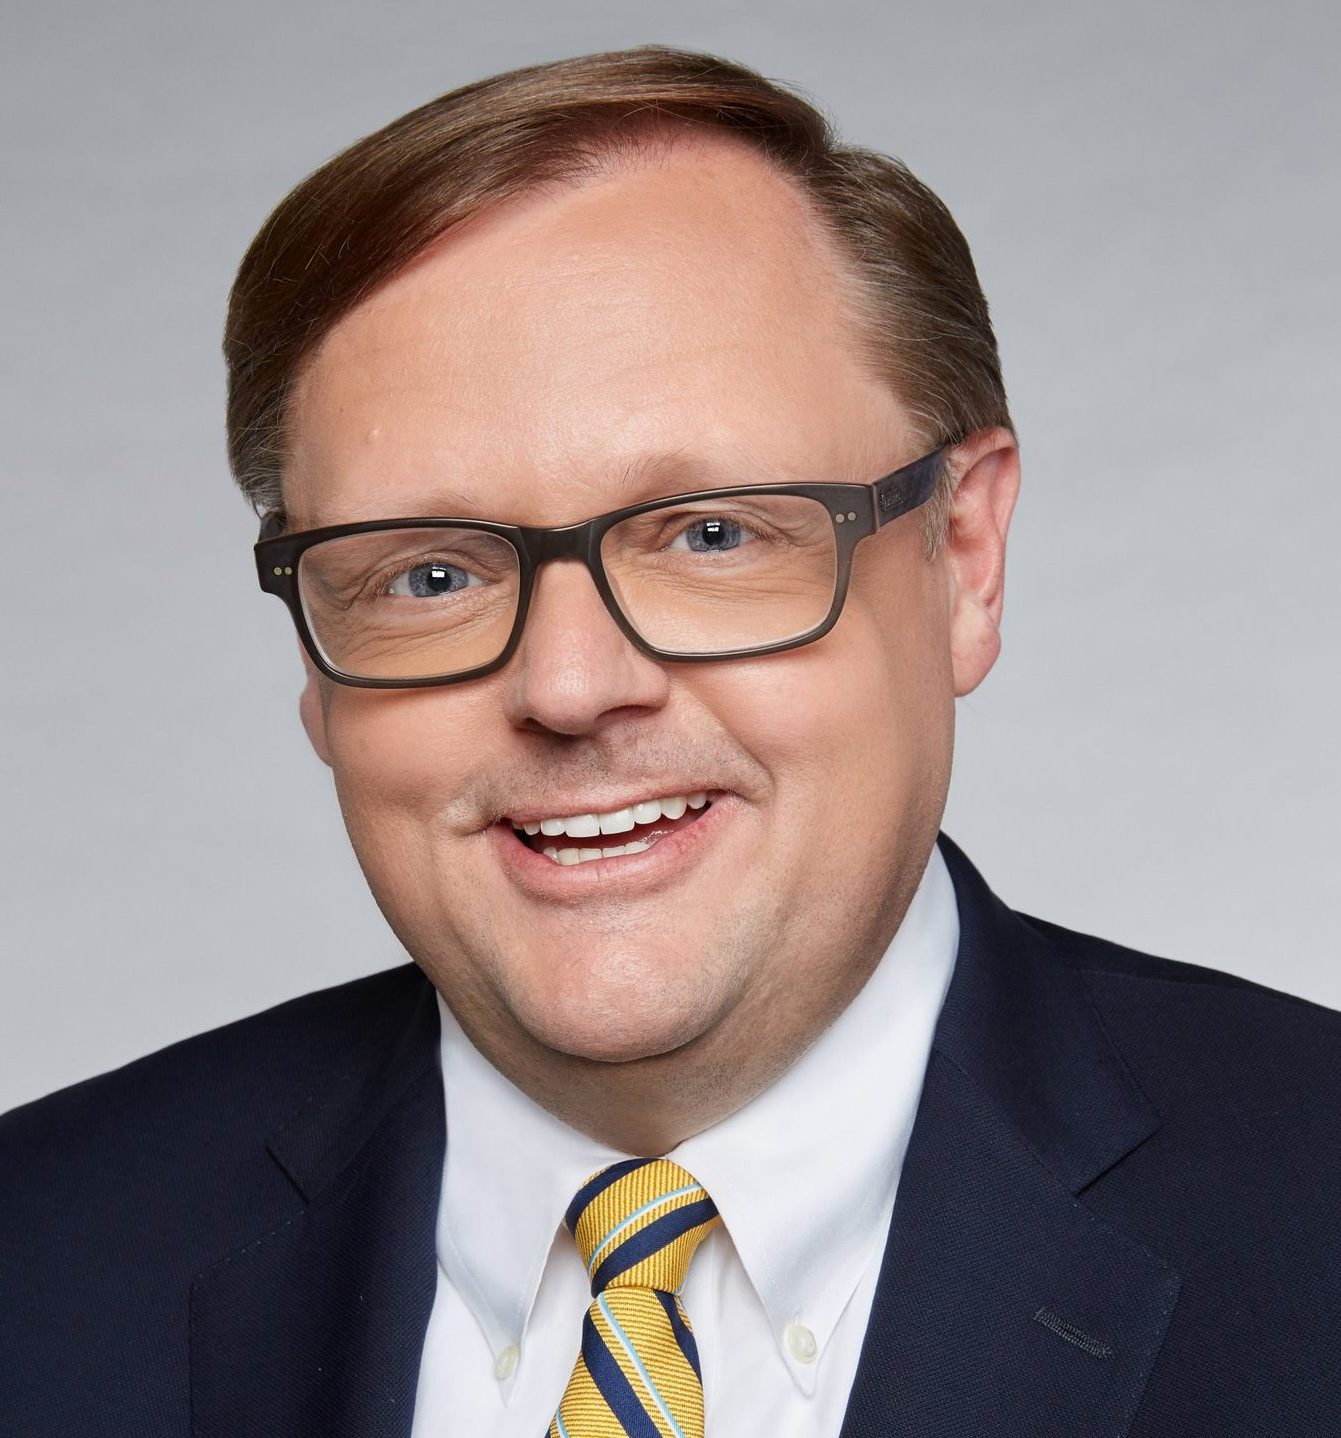 Westlake Legal Group 1-3-e1563373525611 Todd Starnes: Middle school students taught Trump is 'an idiot' – Anti-Trump hatred infects schools Todd Starnes fox-news/us/education/controversies fox-news/us/education fox-news/person/donald-trump fox-news/opinion fox news fnc/opinion fnc article 365e6460-d77c-5c9d-92b4-680554260d7c